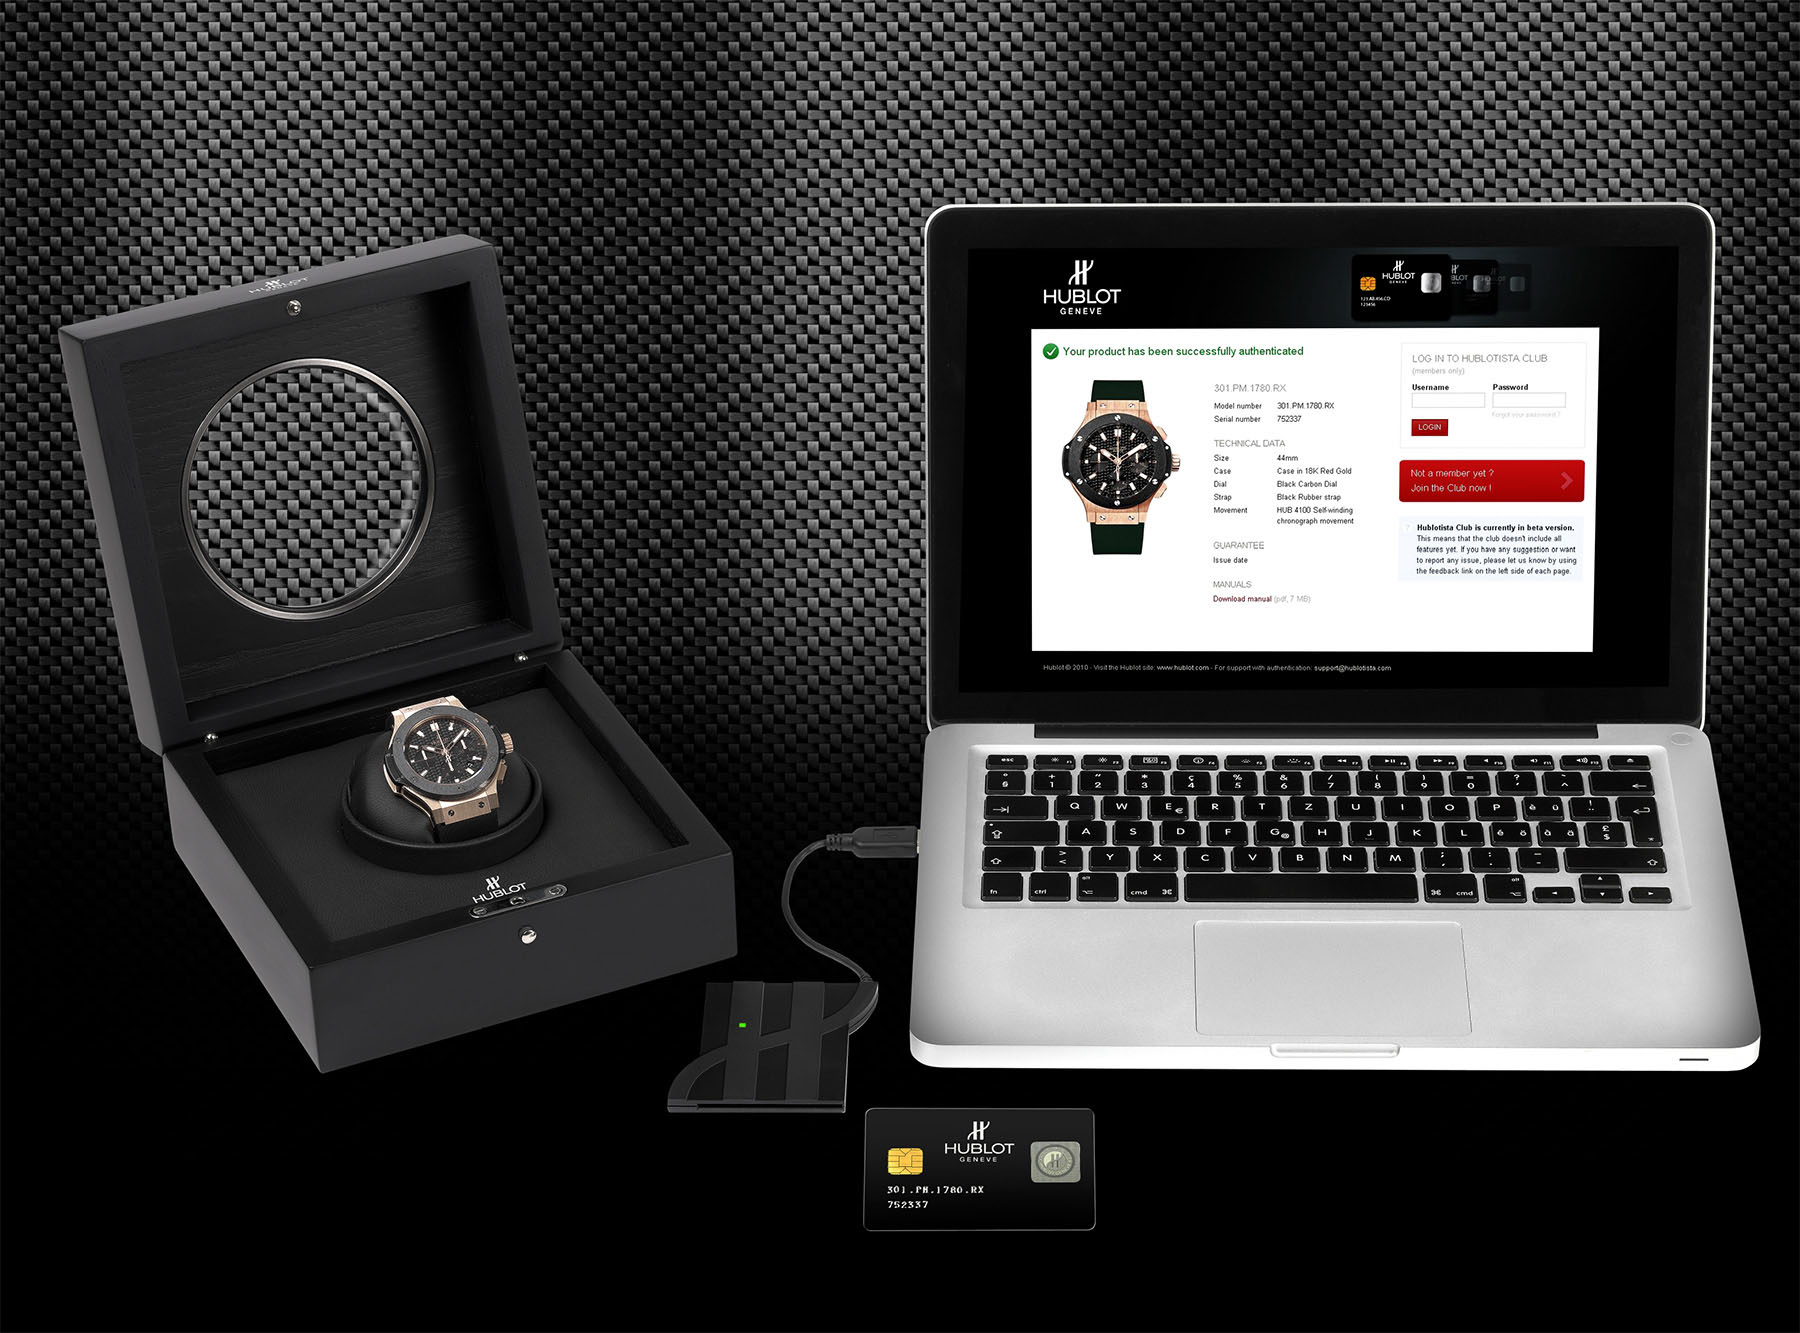 WISeKey Authentification System for Hublot Watche